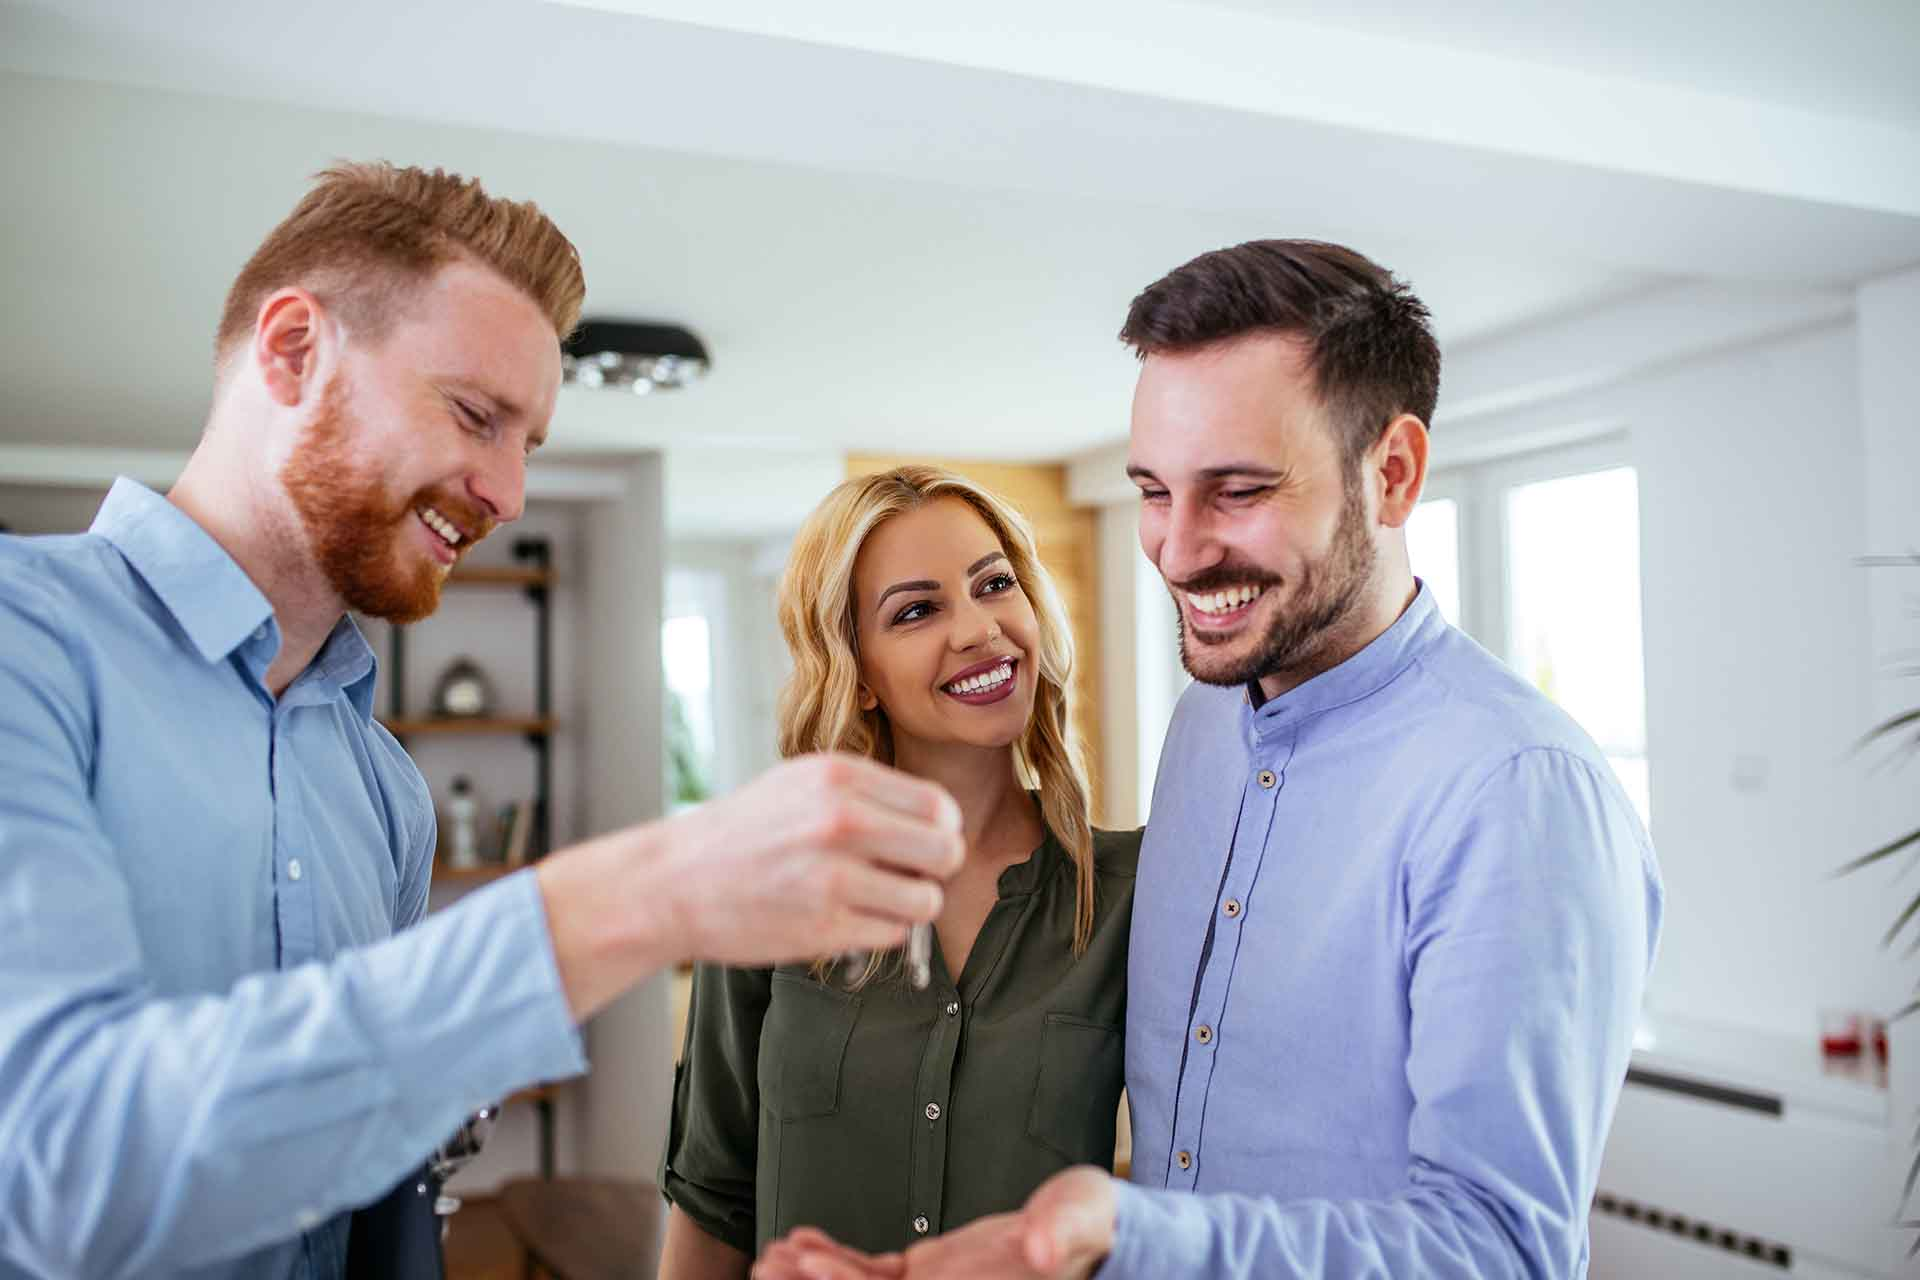 How Can I Impress Potential Home Buyers?